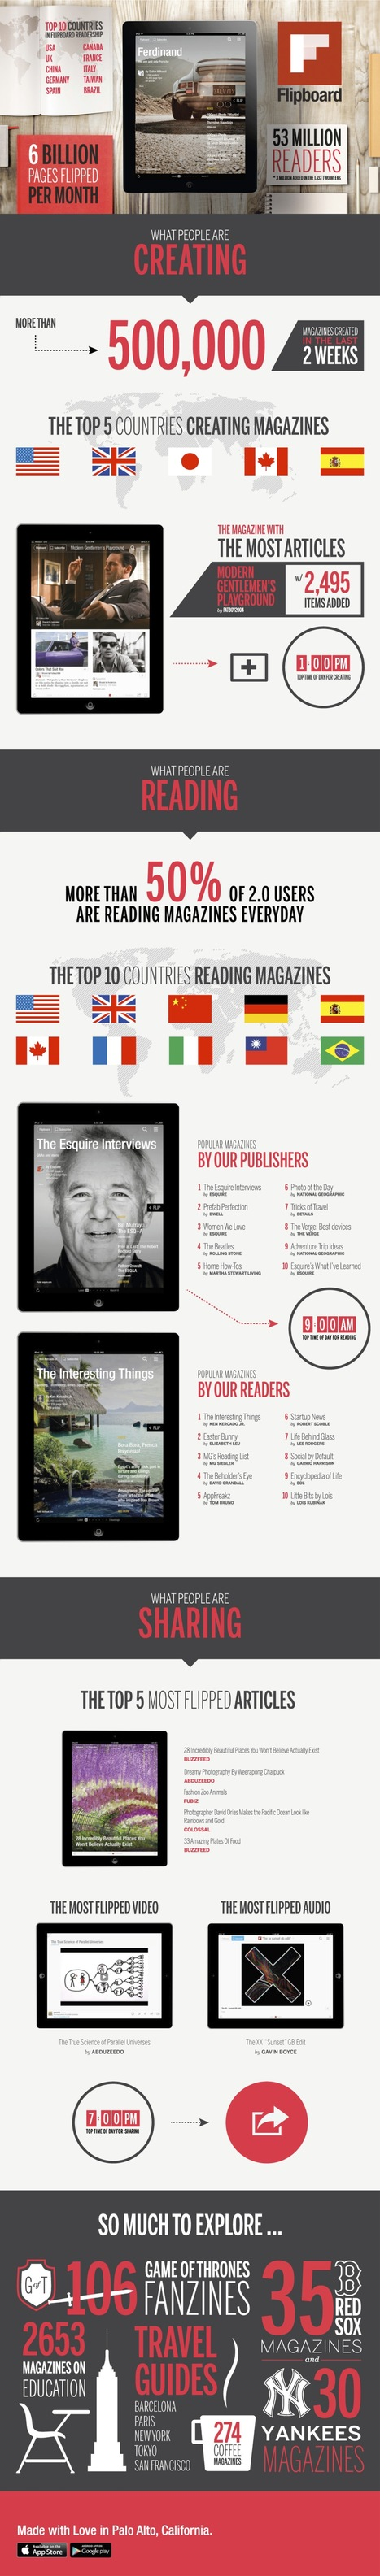 The State of Flipboard and Rise of Mobile Curation [INFOGRAPHIC] | New to Social Media | Scoop.it